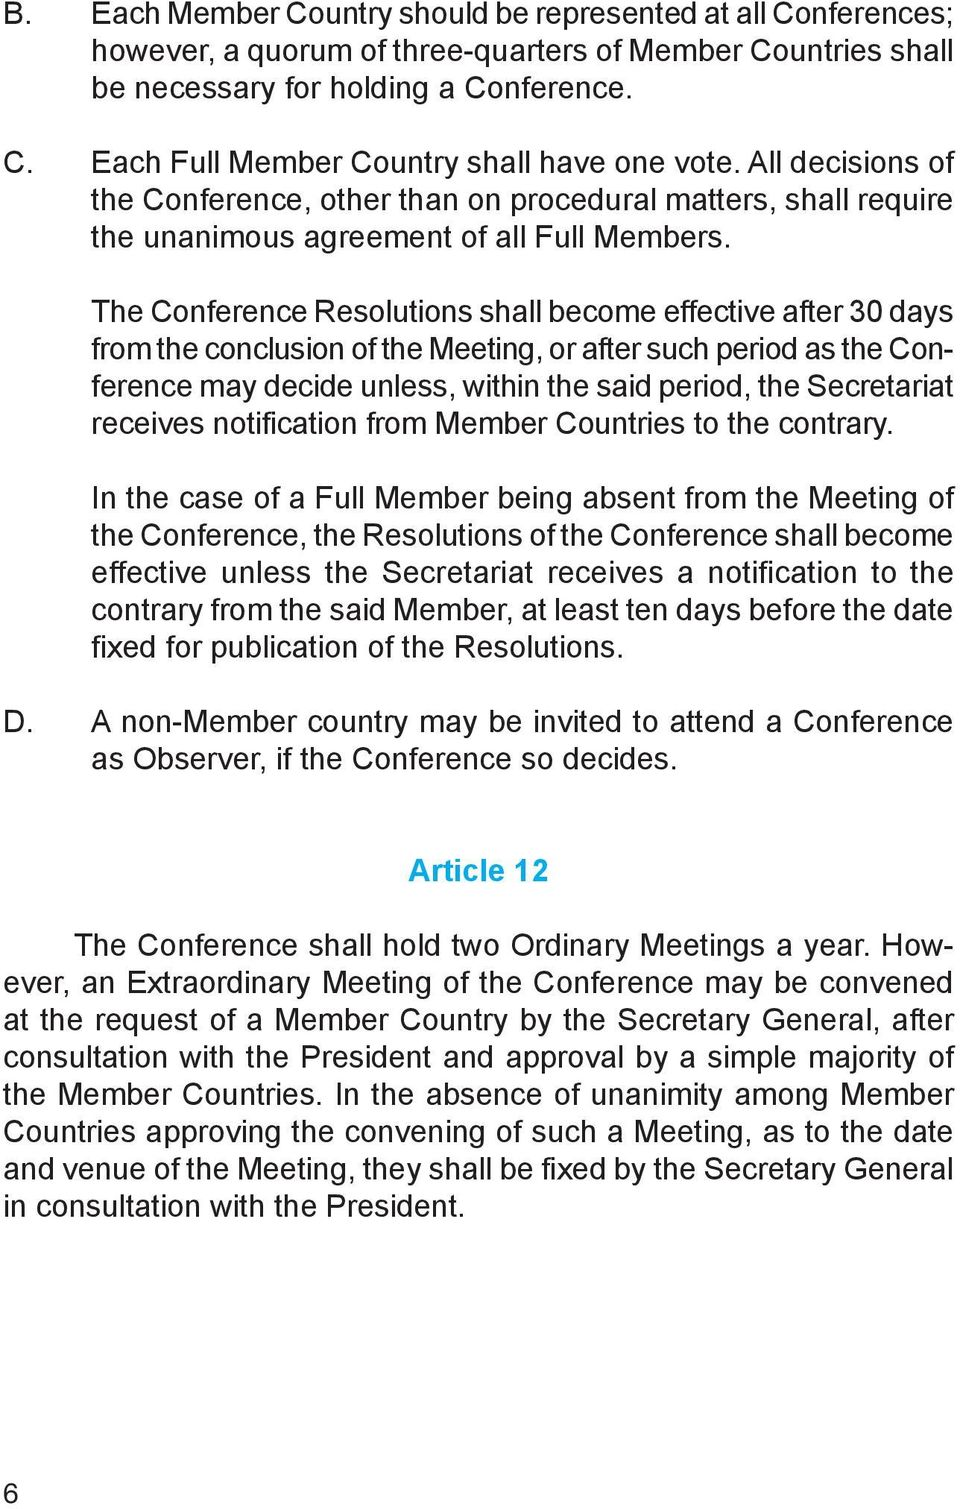 The Conference Resolutions shall become effective after 30 days from the conclusion of the Meeting, or after such period as the Conference may decide unless, within the said period, the Secretariat